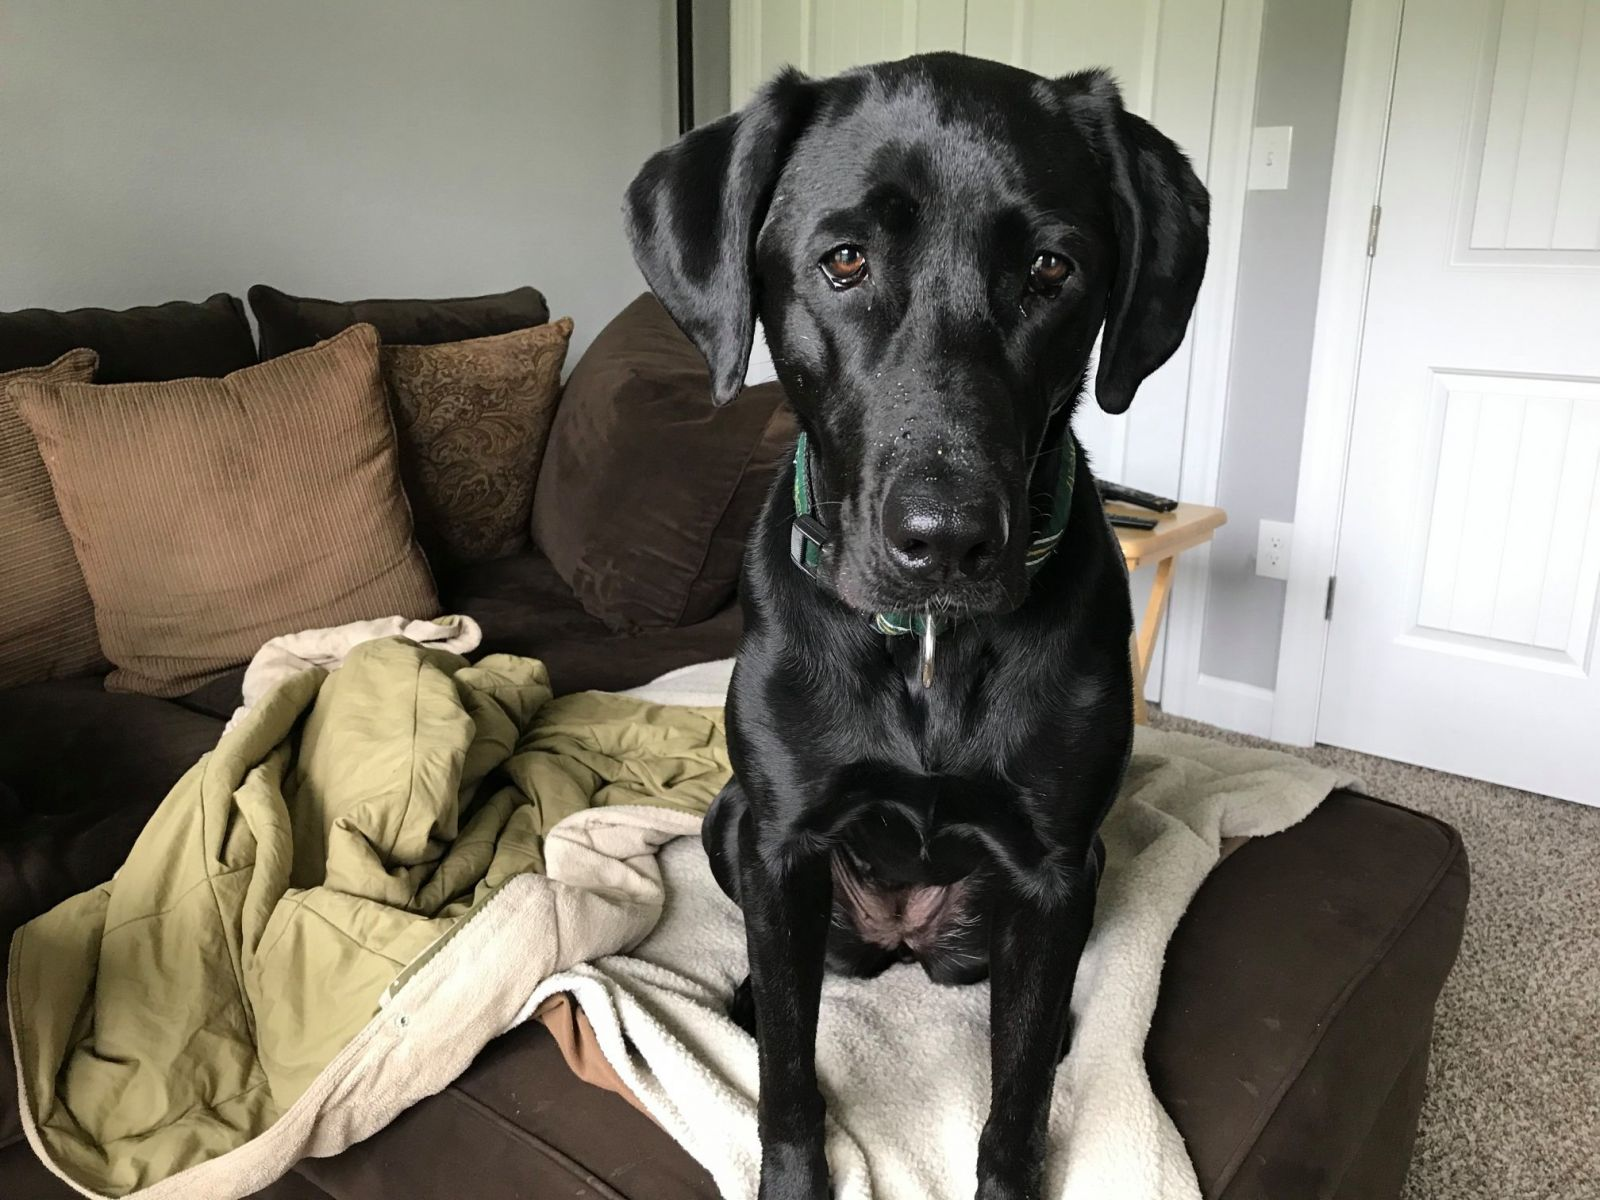 Black lab staring into the camera wanting to play